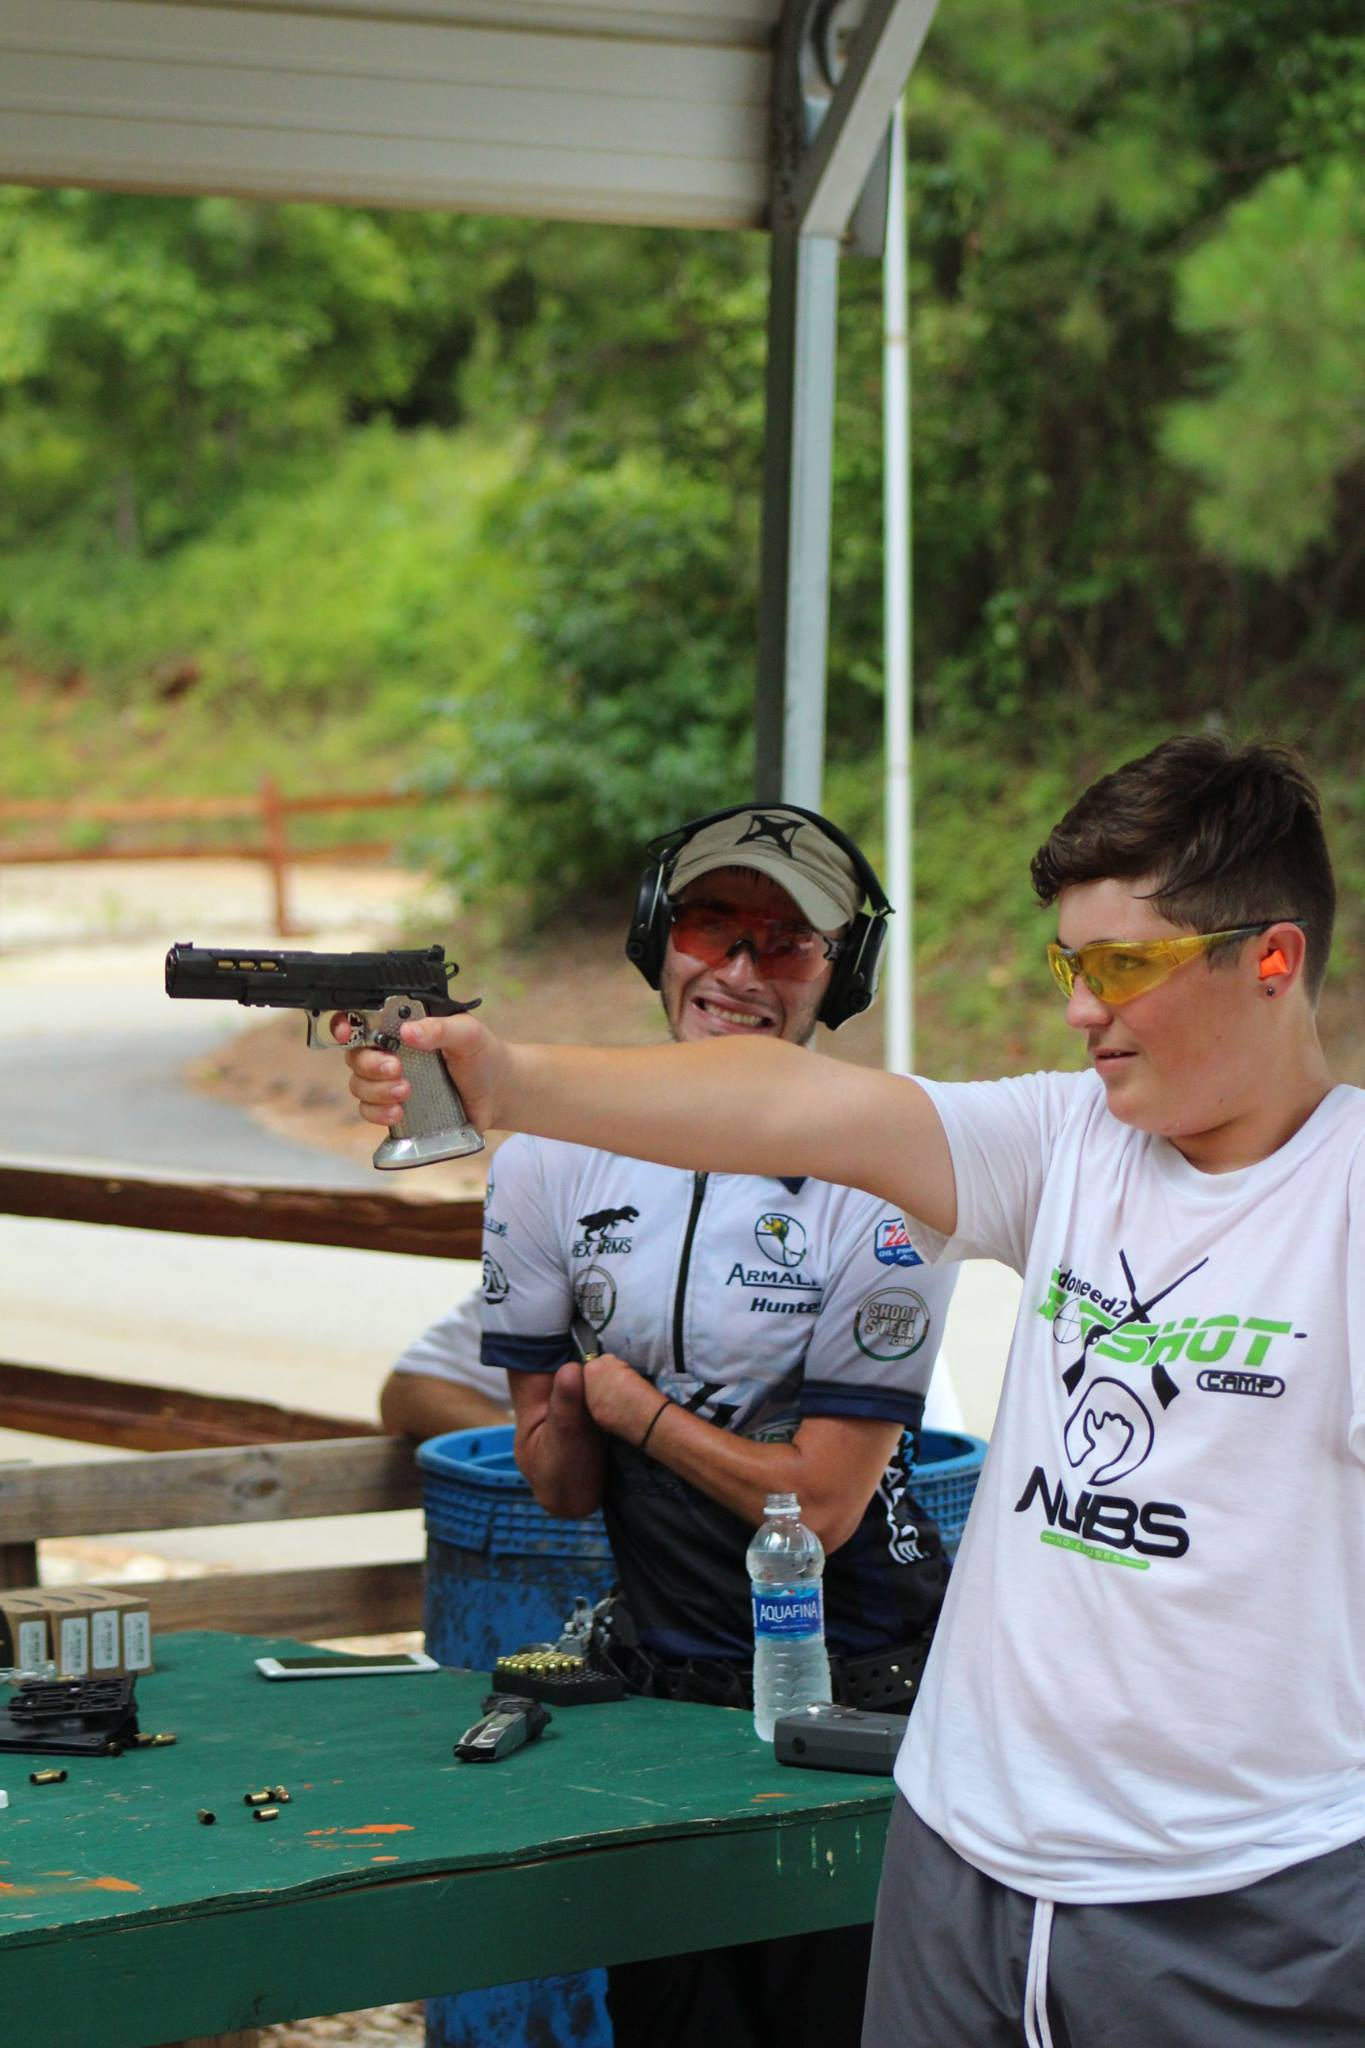 Hunter Cayll instructing how to target shoot with a pistol